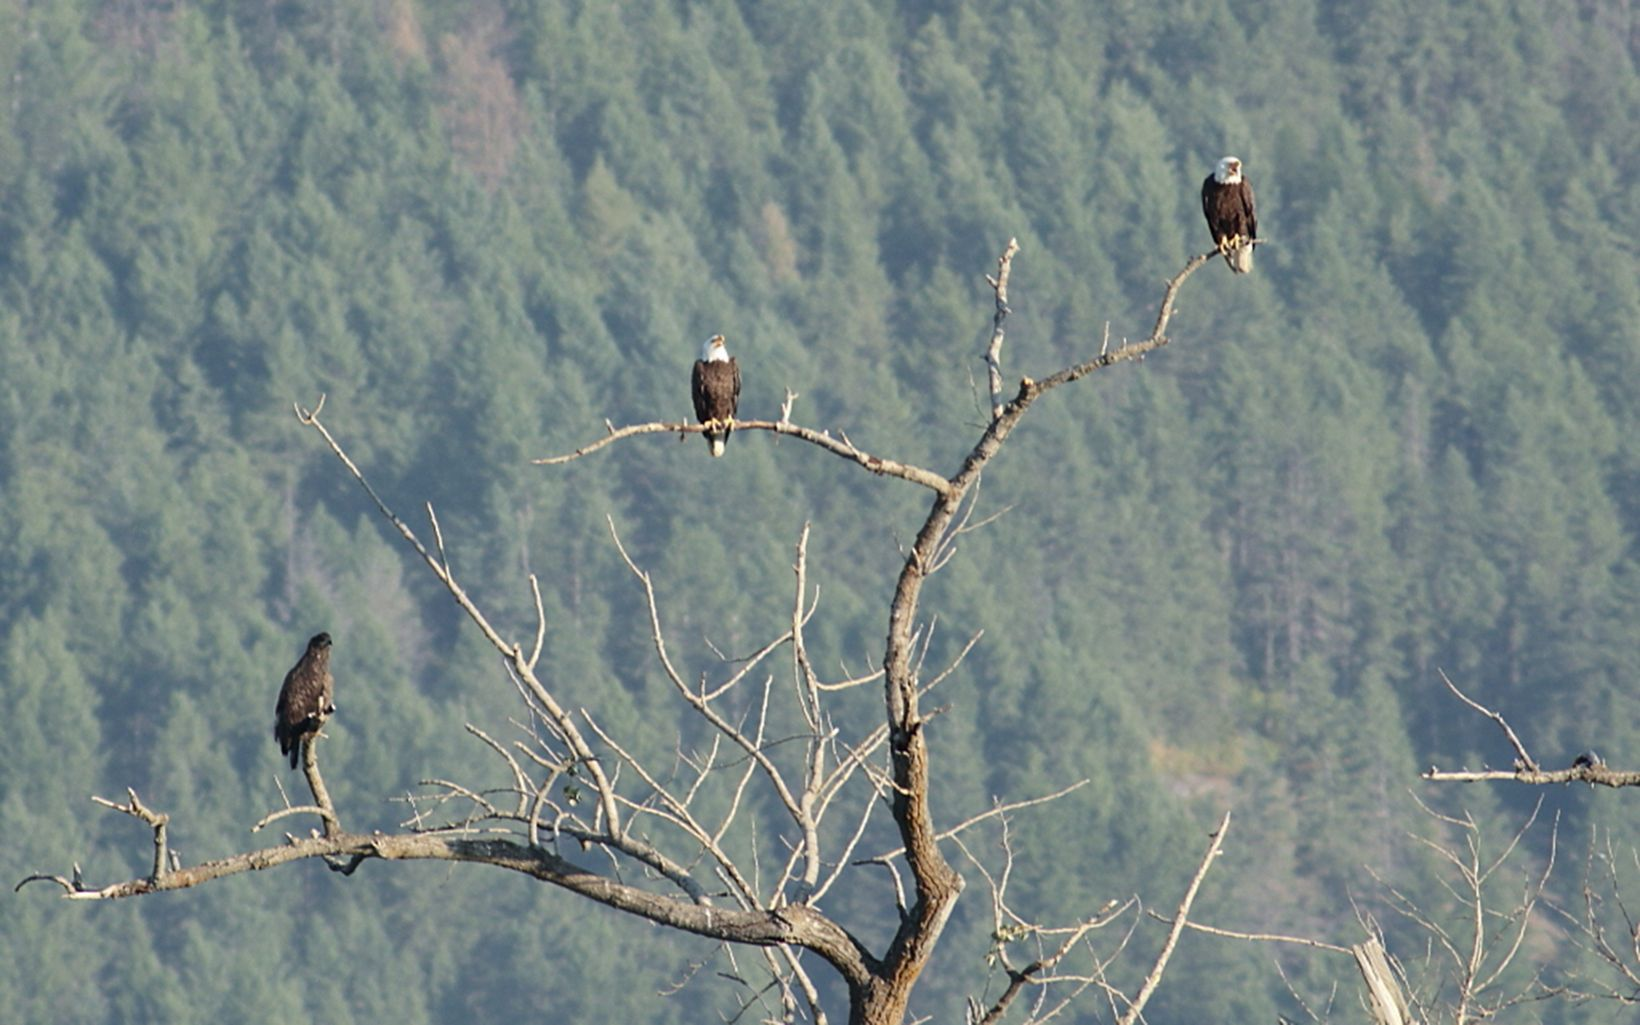 Bald eagles Perched at Ball Creek